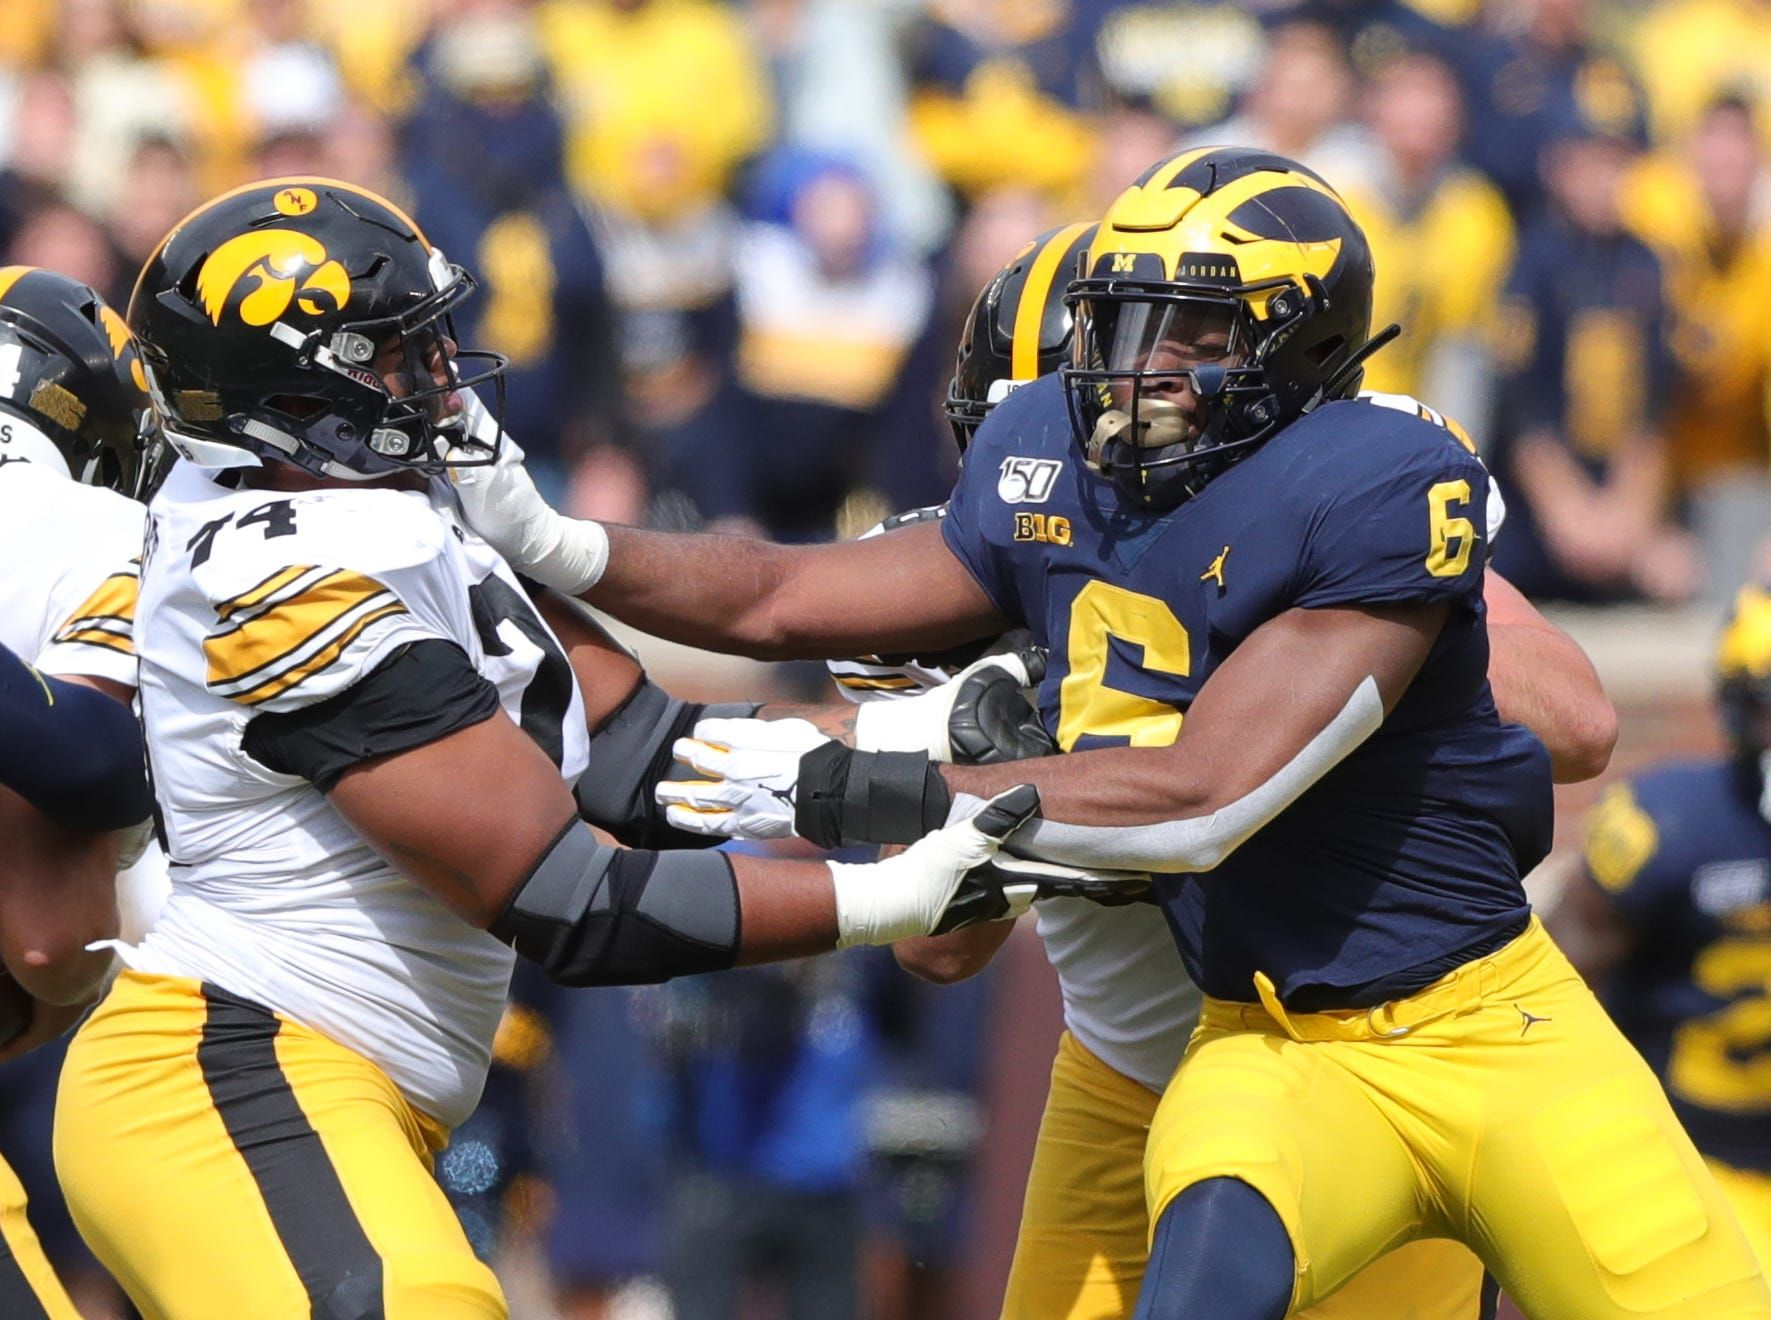 How Michigan Football S Josh Uche Is Diversifying His Linebacker S Toolbox With Images Michigan Football Iowa Hawkeye Football Hawkeye Football